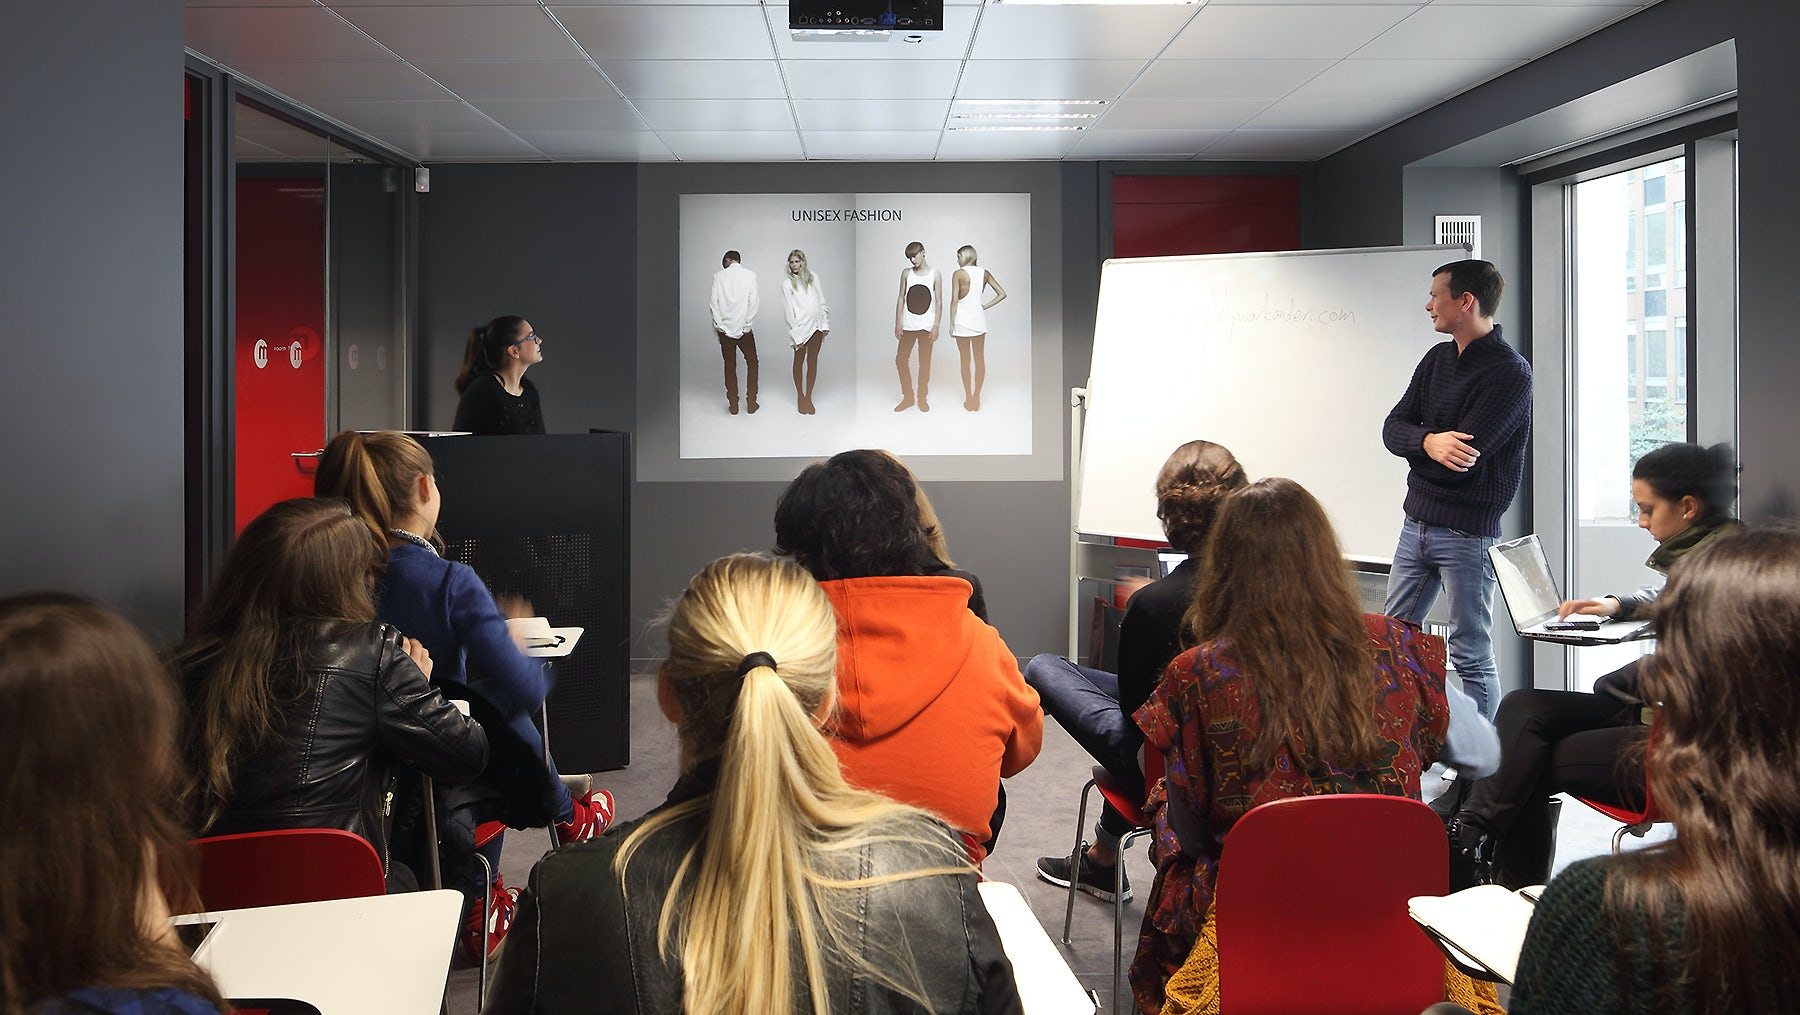 Fashion Students Say They Need More Business Training